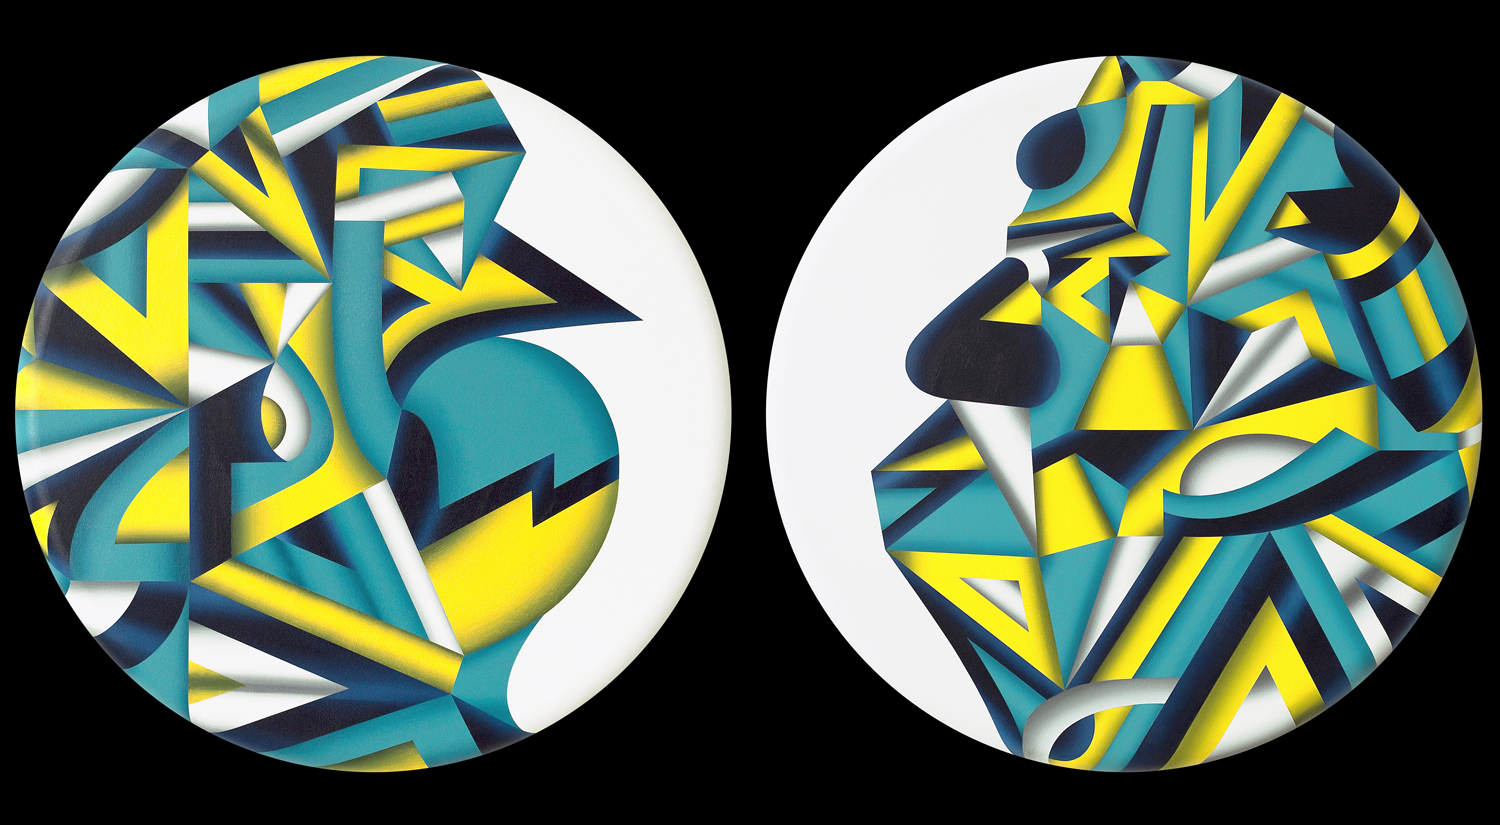 Maledictus & Benedictus (Two Ways To Play The Game), 2010 acrylic on canvas both 30 inch diameter